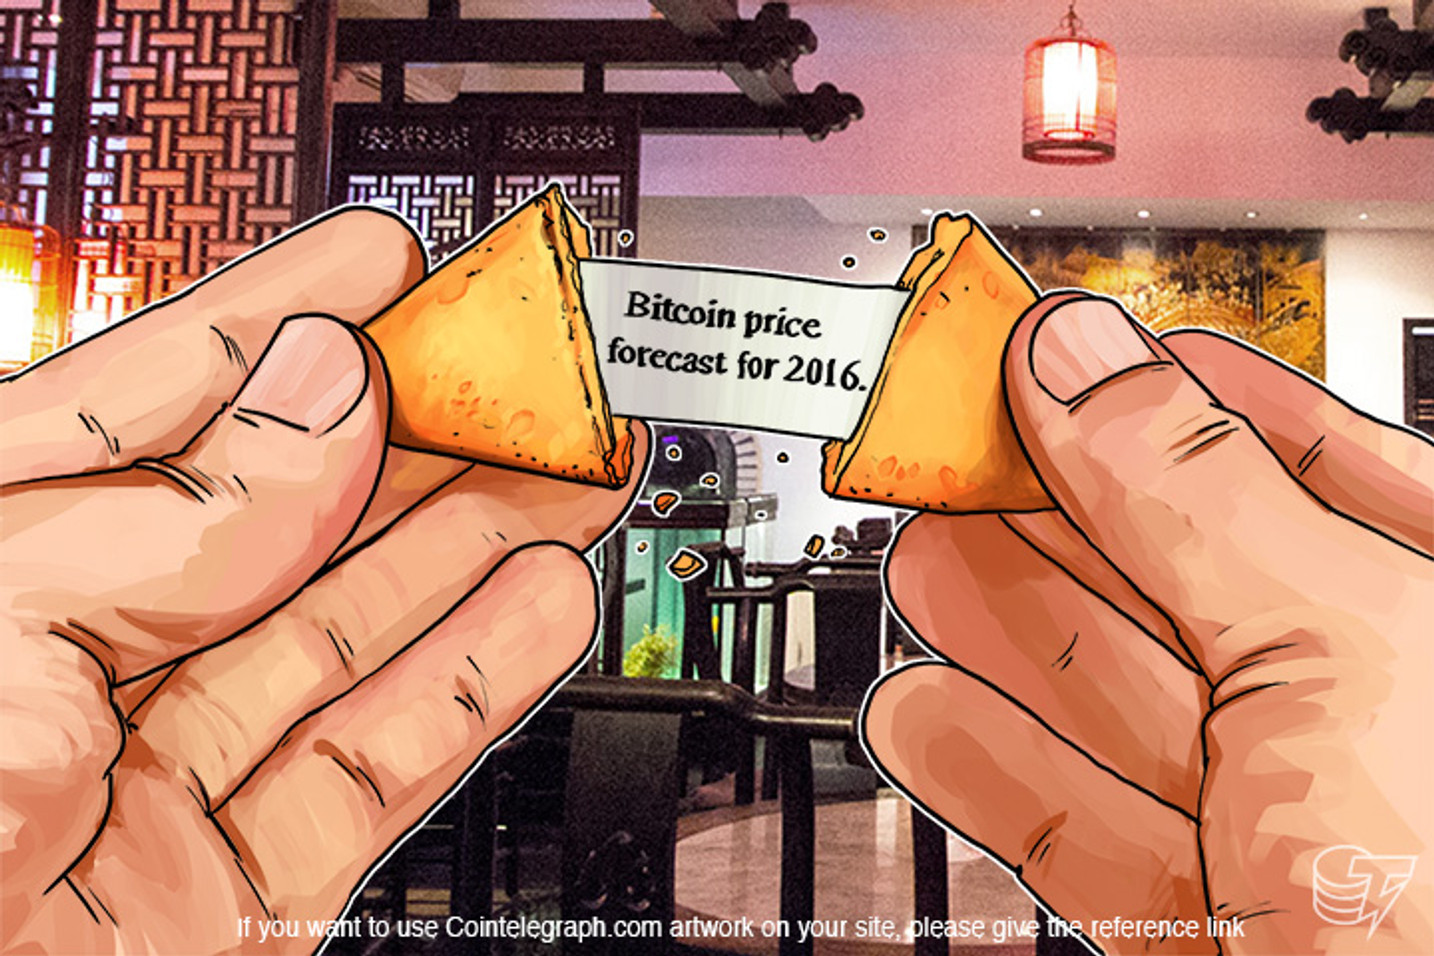 Bitcoin Price Fluctuation In 2015 And A Forecast For 2016